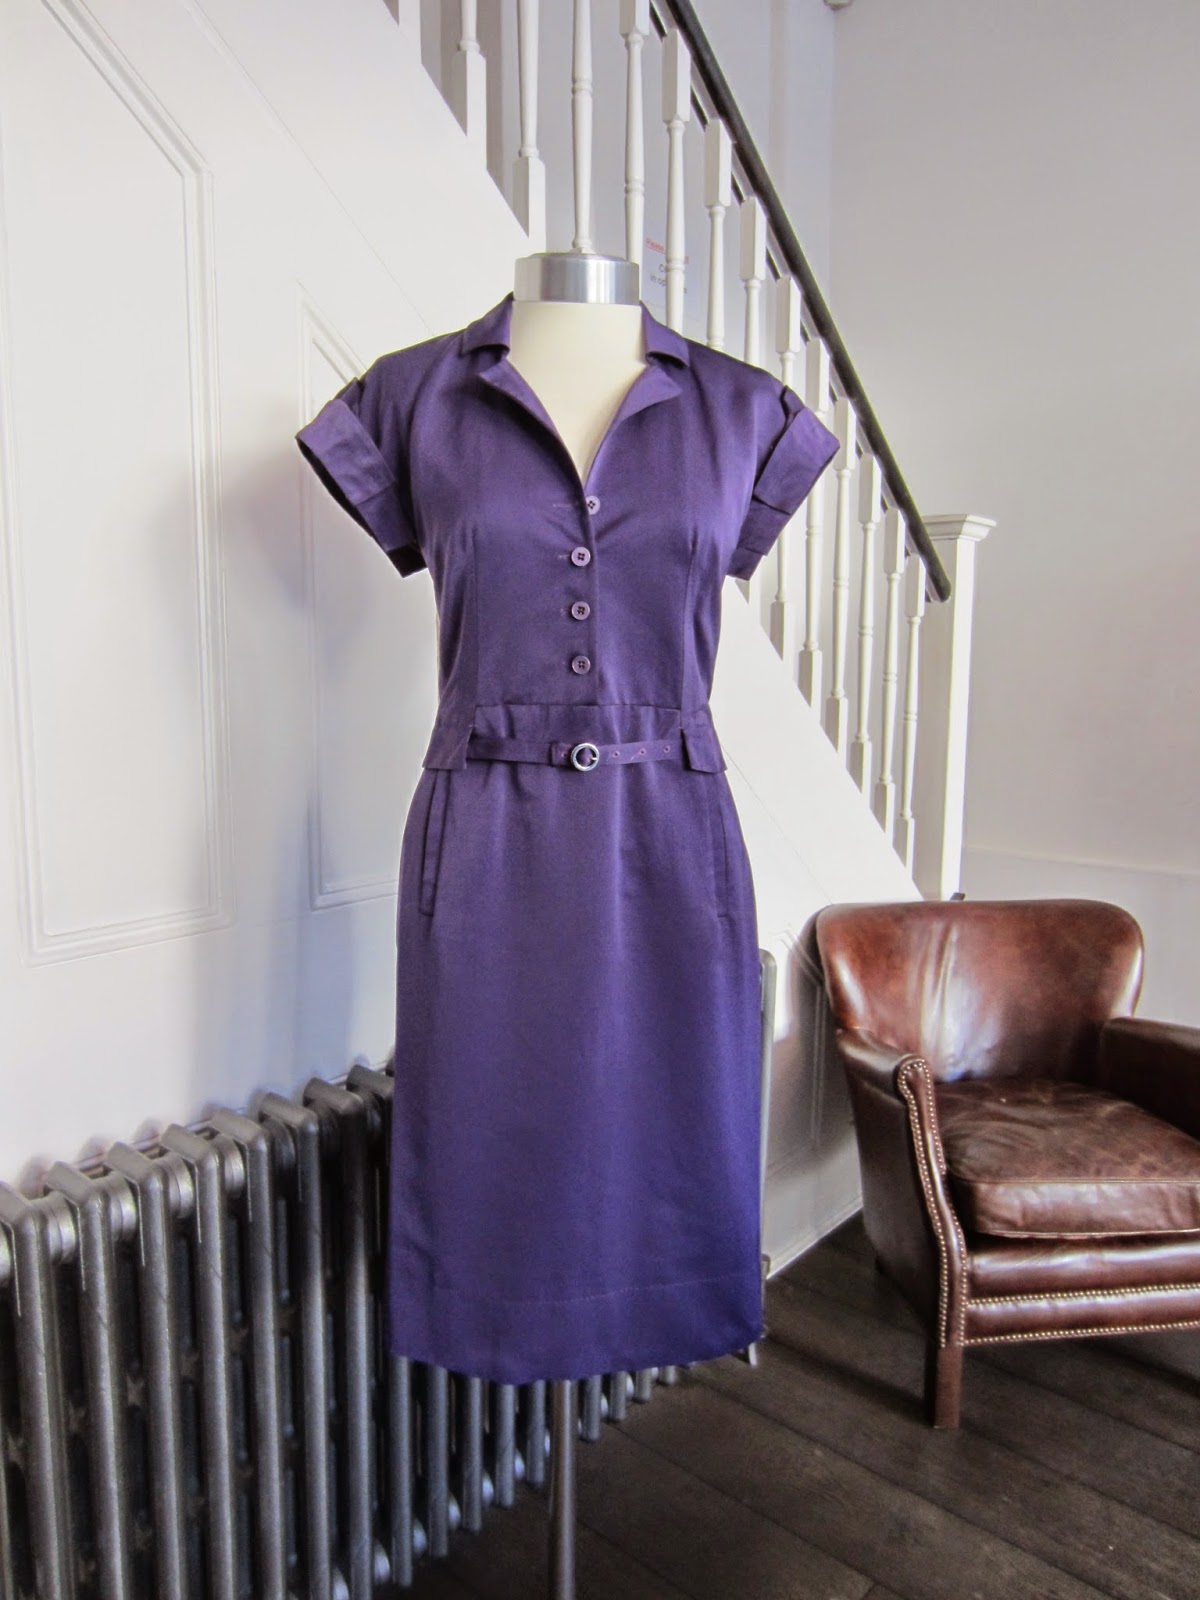 Boss/Hugo Boss Purple Dress